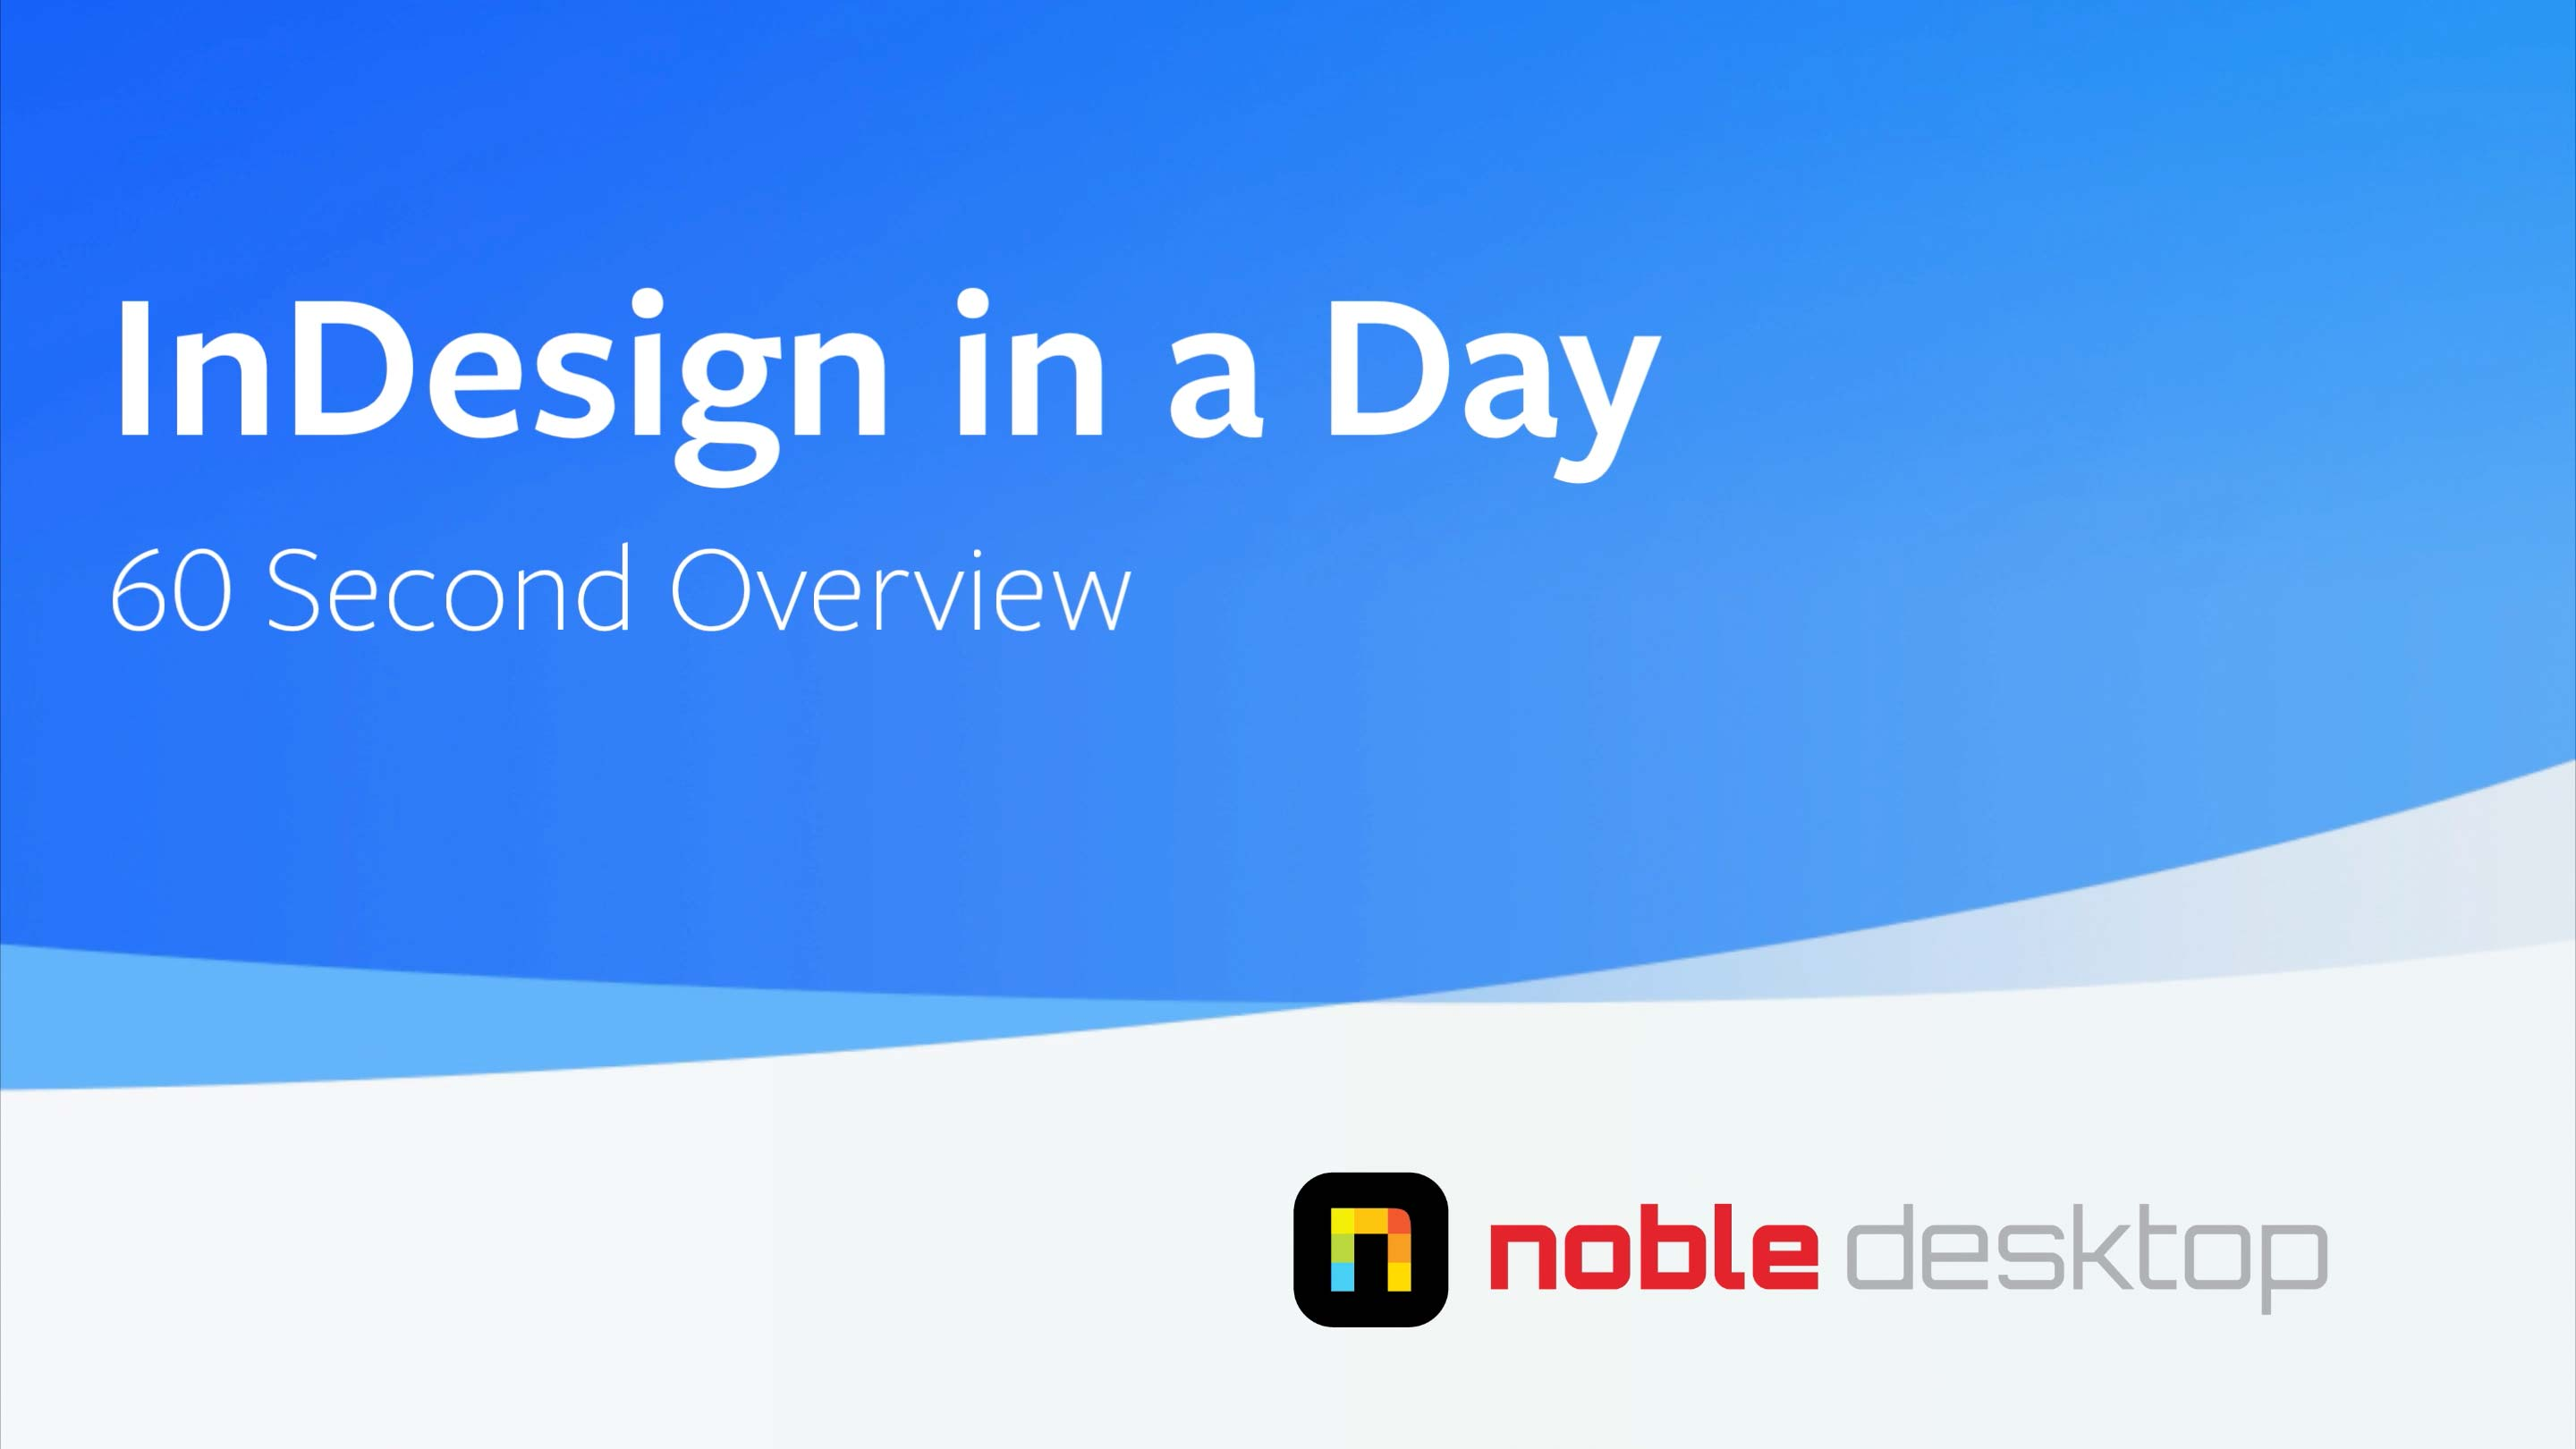 InDesign in a Day Class Overview